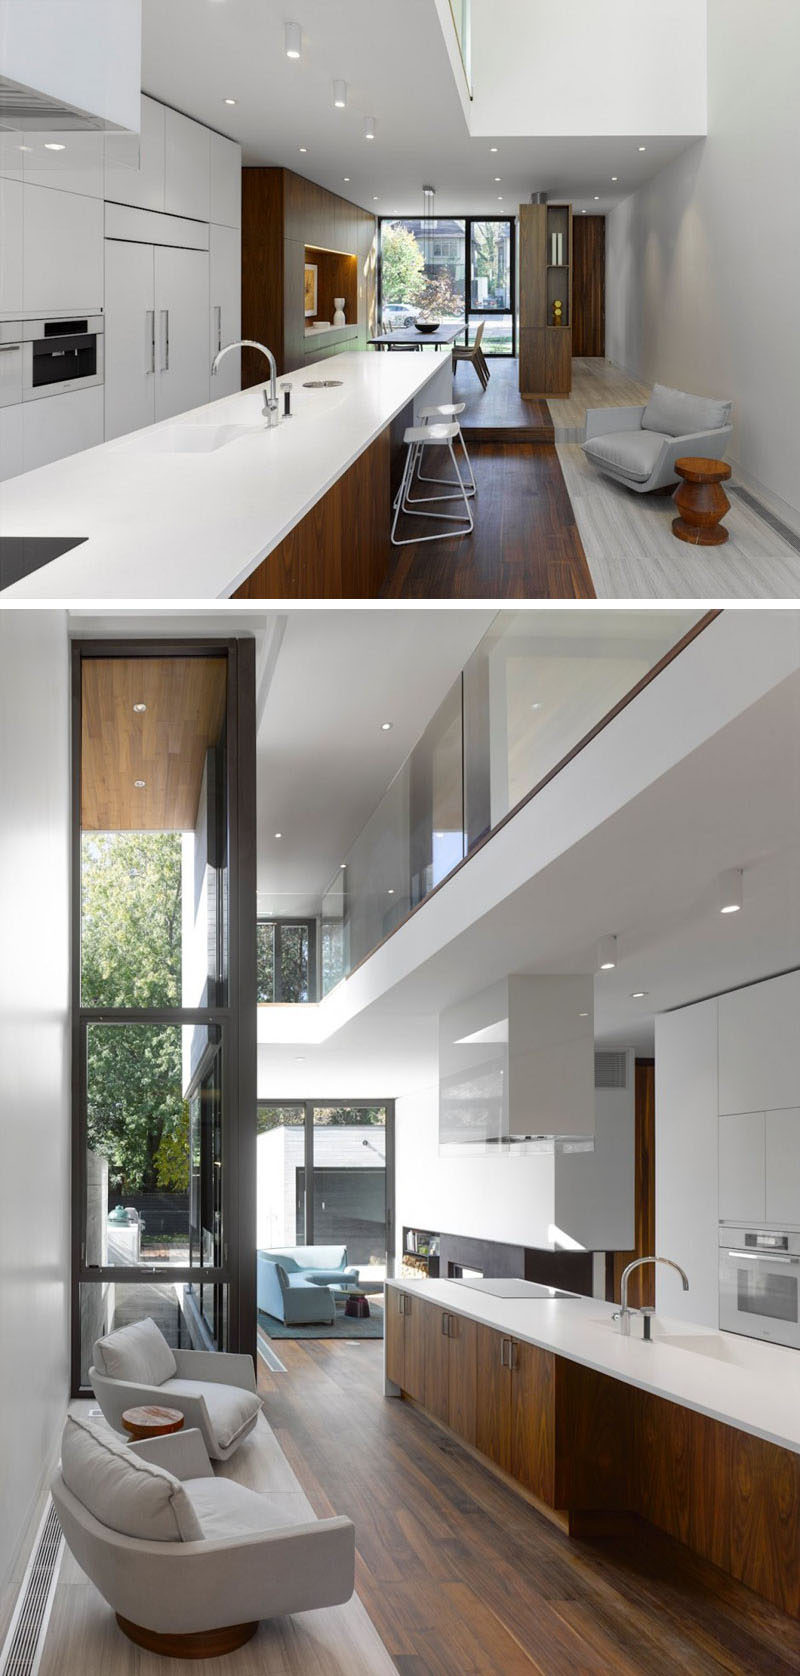 The layout of the main floor of this modern house has the dining room looking out onto the street, while the kitchen with its white minimalist cabinets, leads to the living room at the rear of the house.#ModernInteriorDesign #KitchenDesign